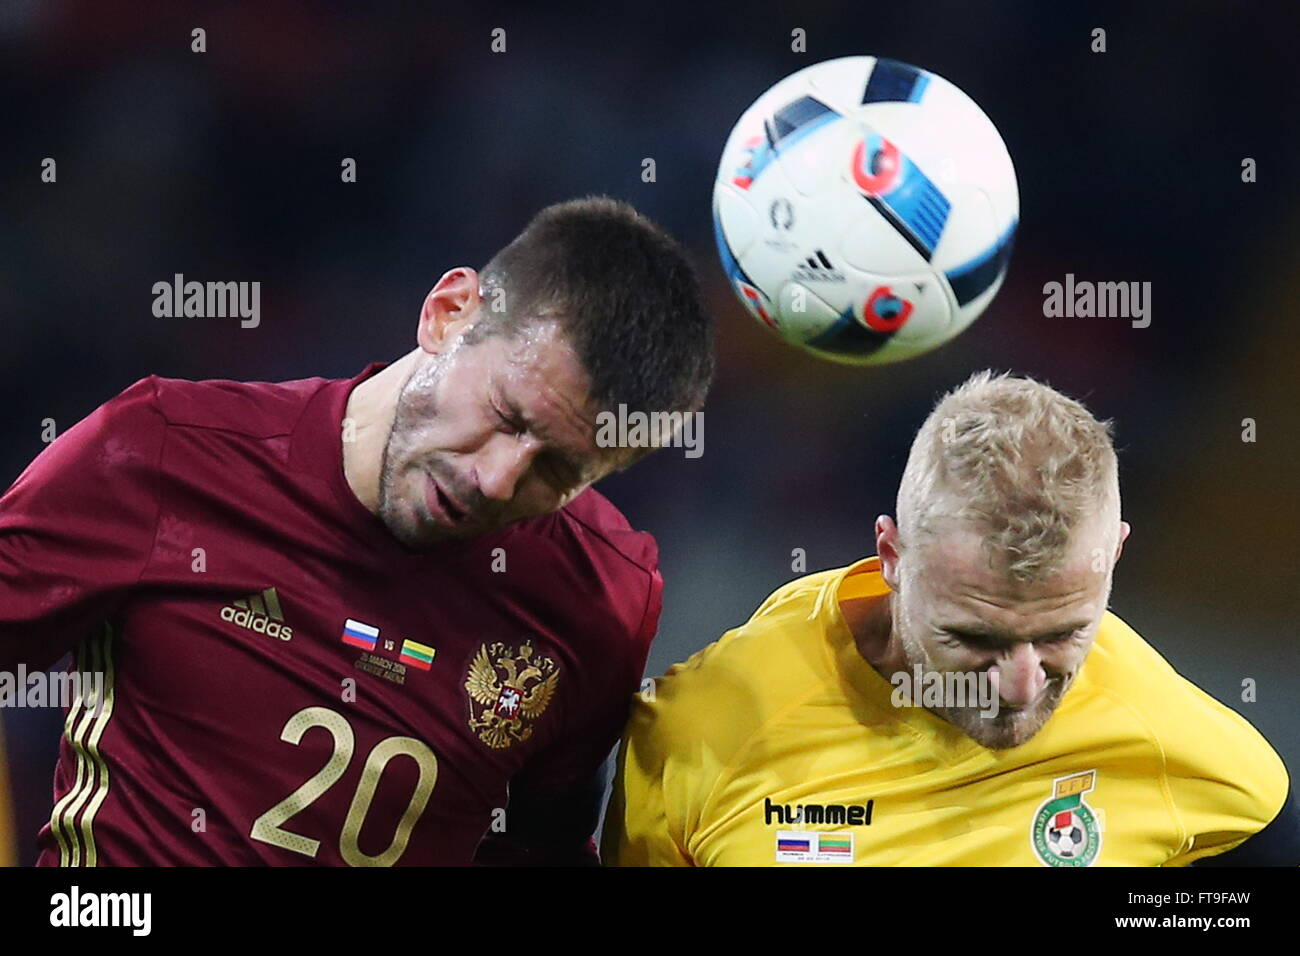 Moscow, Russia. 26th Mar, 2016. Russia's Fyodor Smolov (L) and Lithuania's Vytautas Andriuskevicius fight - Stock Image